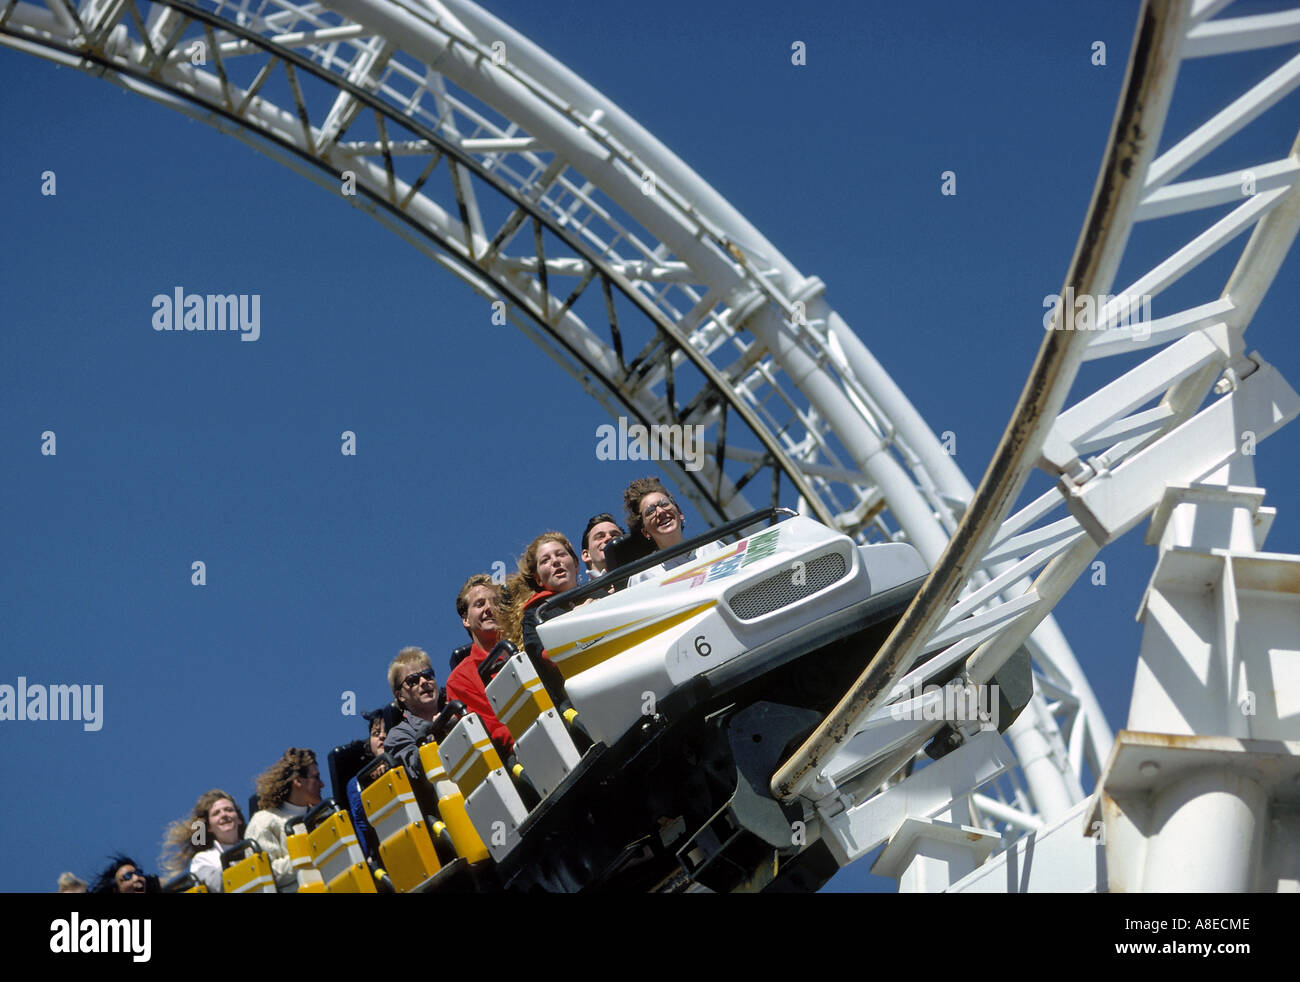 Revolution im Six Flags Magic Mountain in Valencia, Kalifornien Stockbild